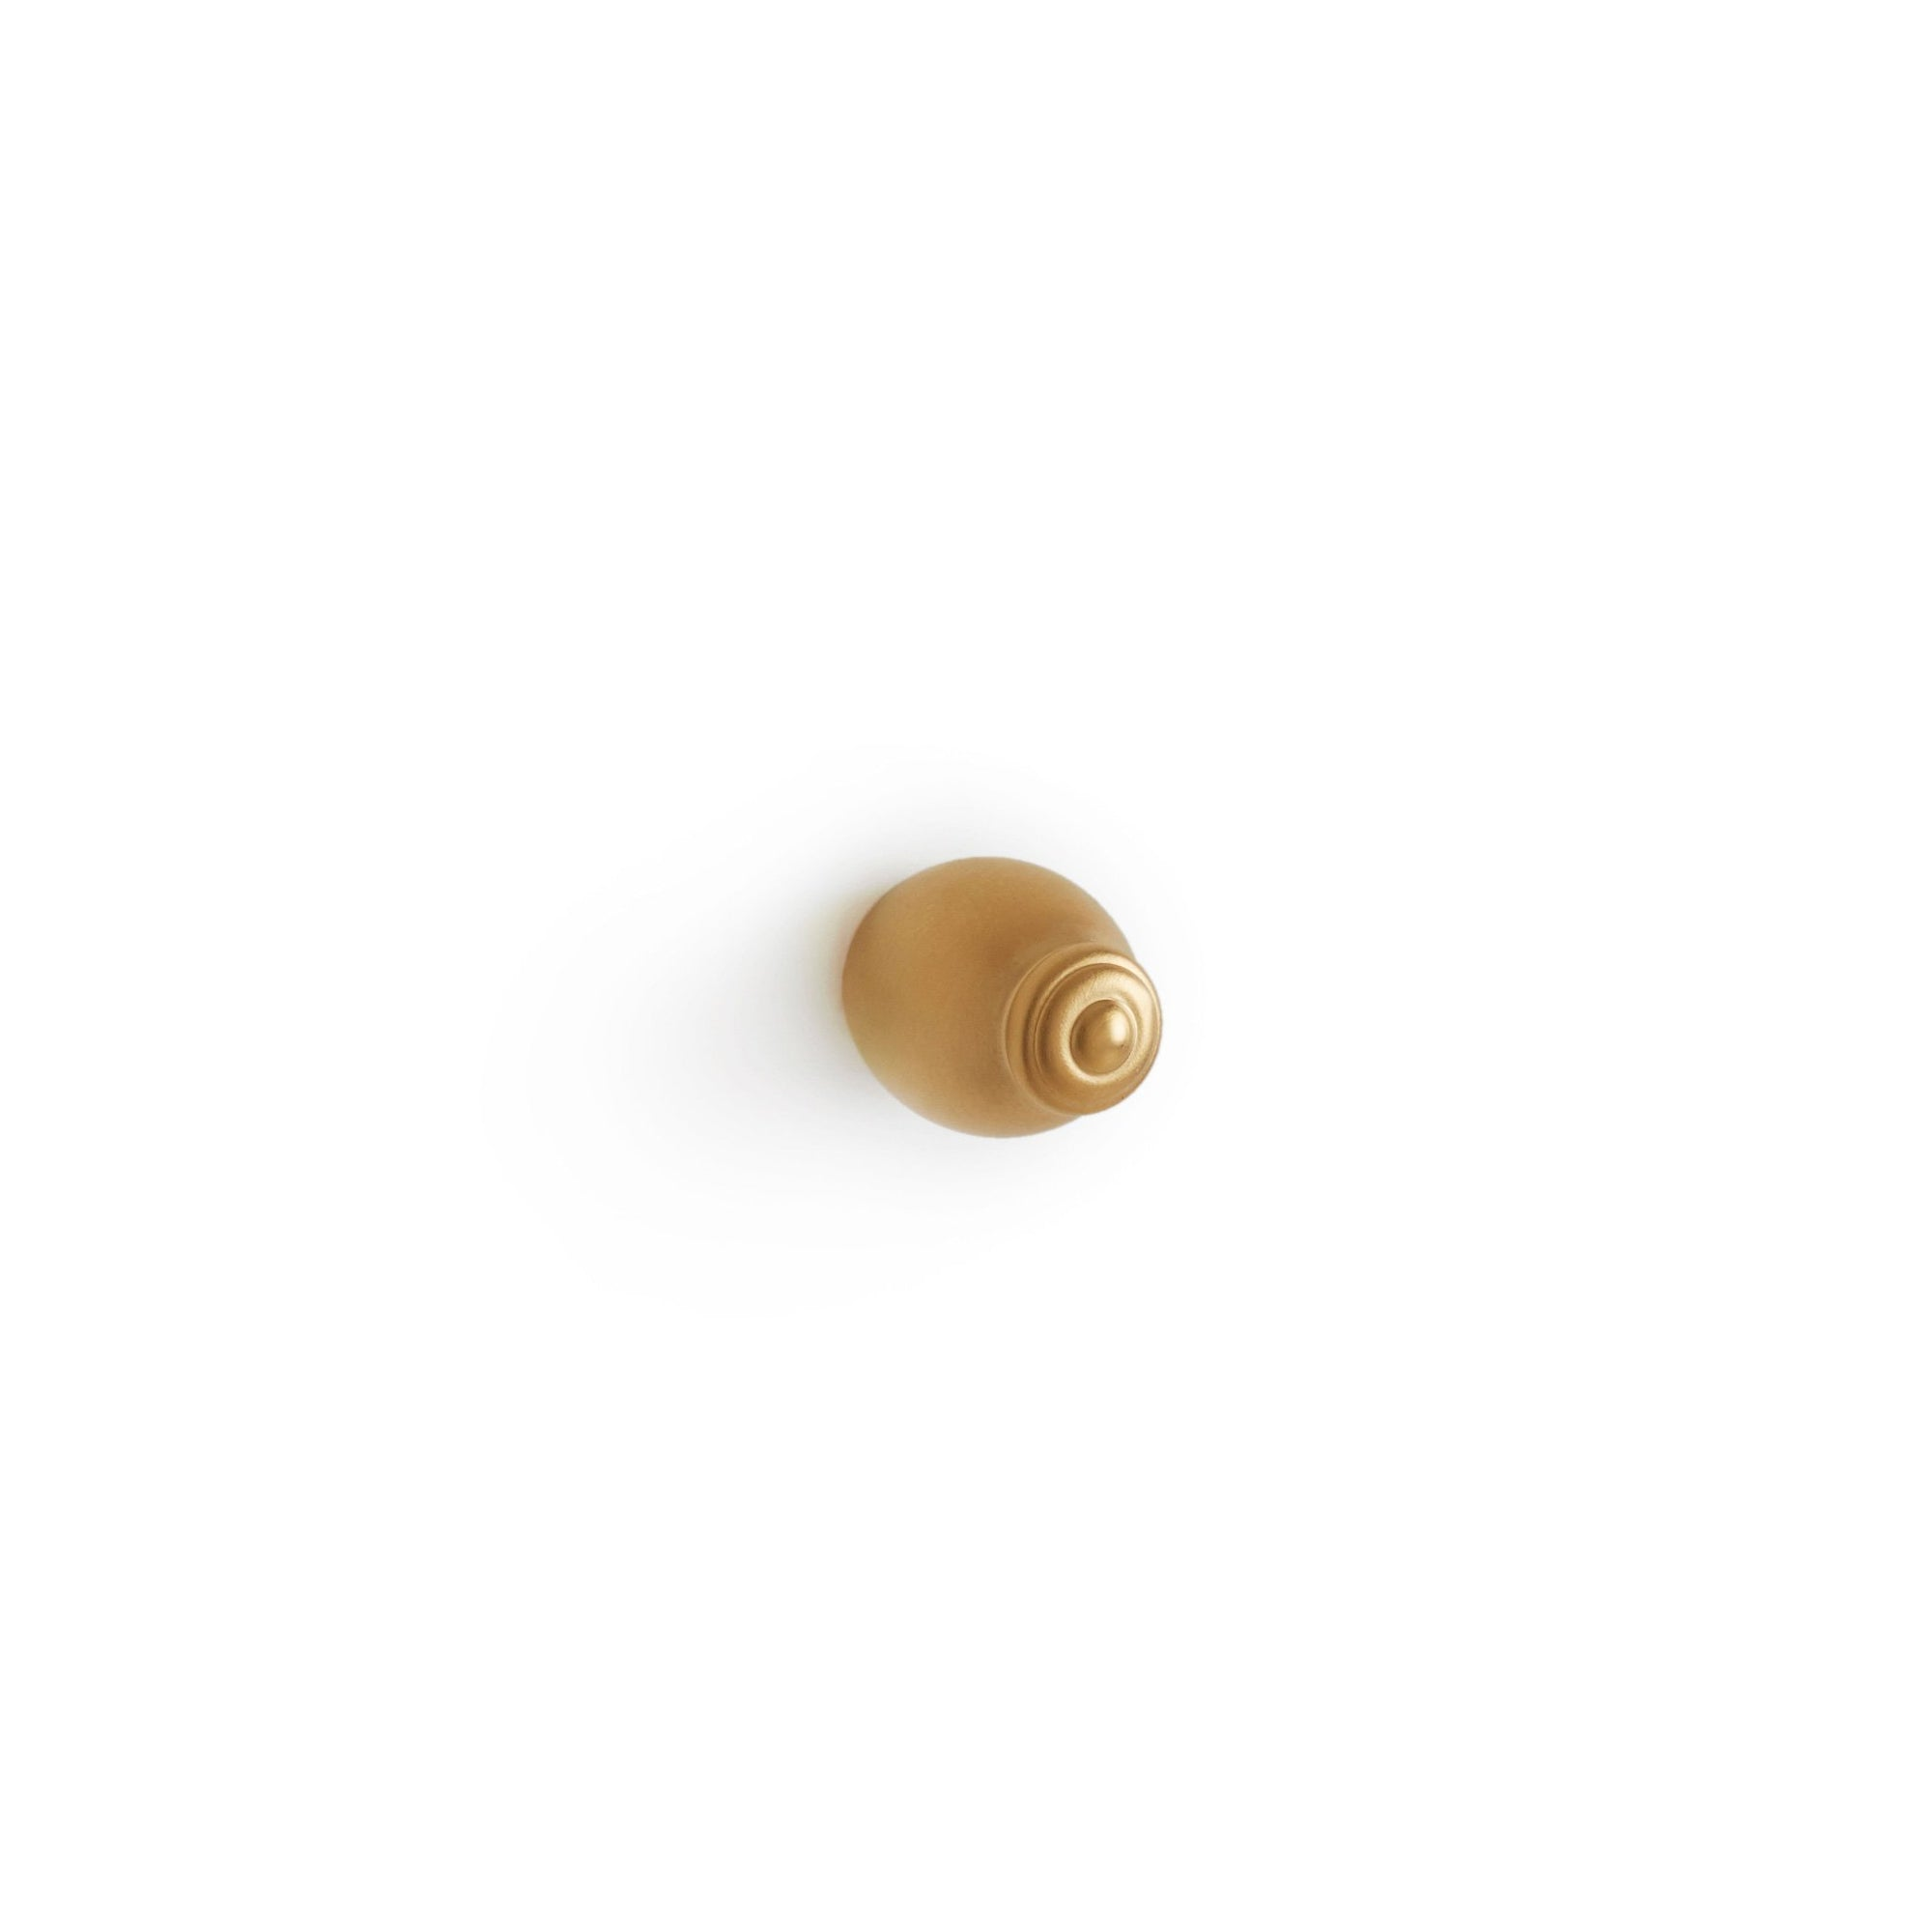 0006-3/4-GP Sherle Wagner International Grey Series I Cabinet & Drawer Knob in Gold Plate metal finish